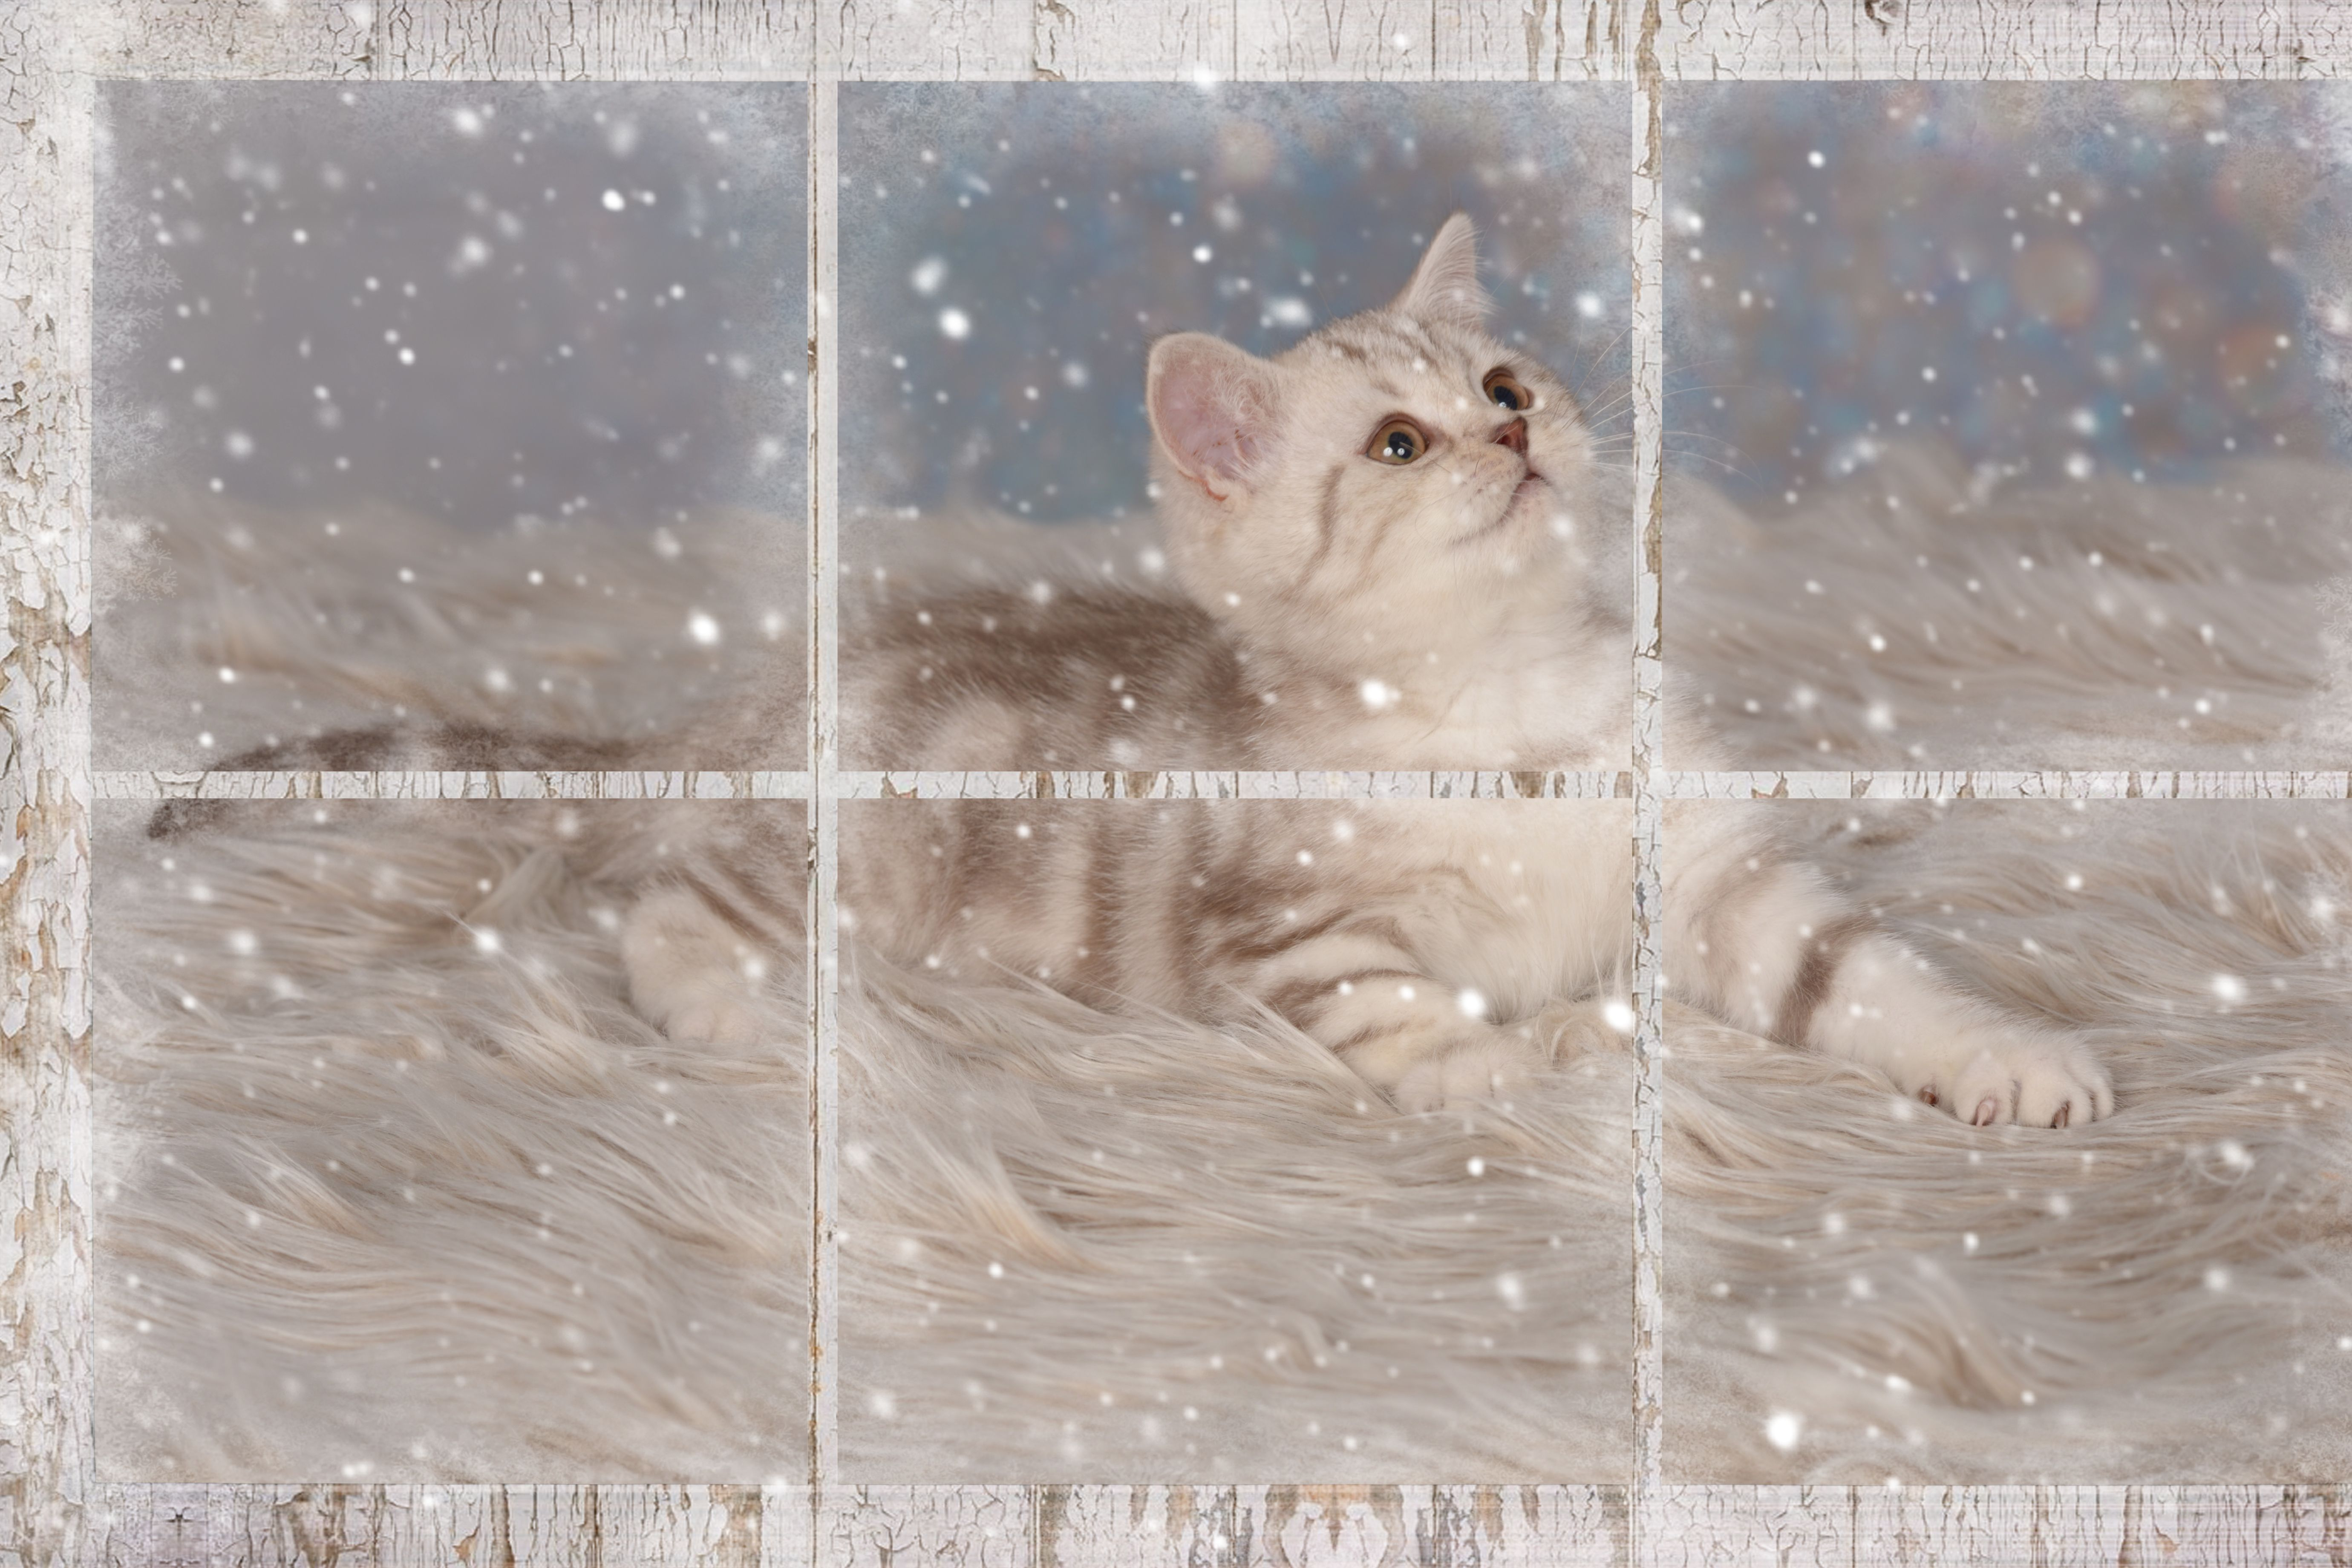 Bkh Kitten Chocolate Silver Classic Tabby With Images Animals And Pets Cats And Kittens Kittens